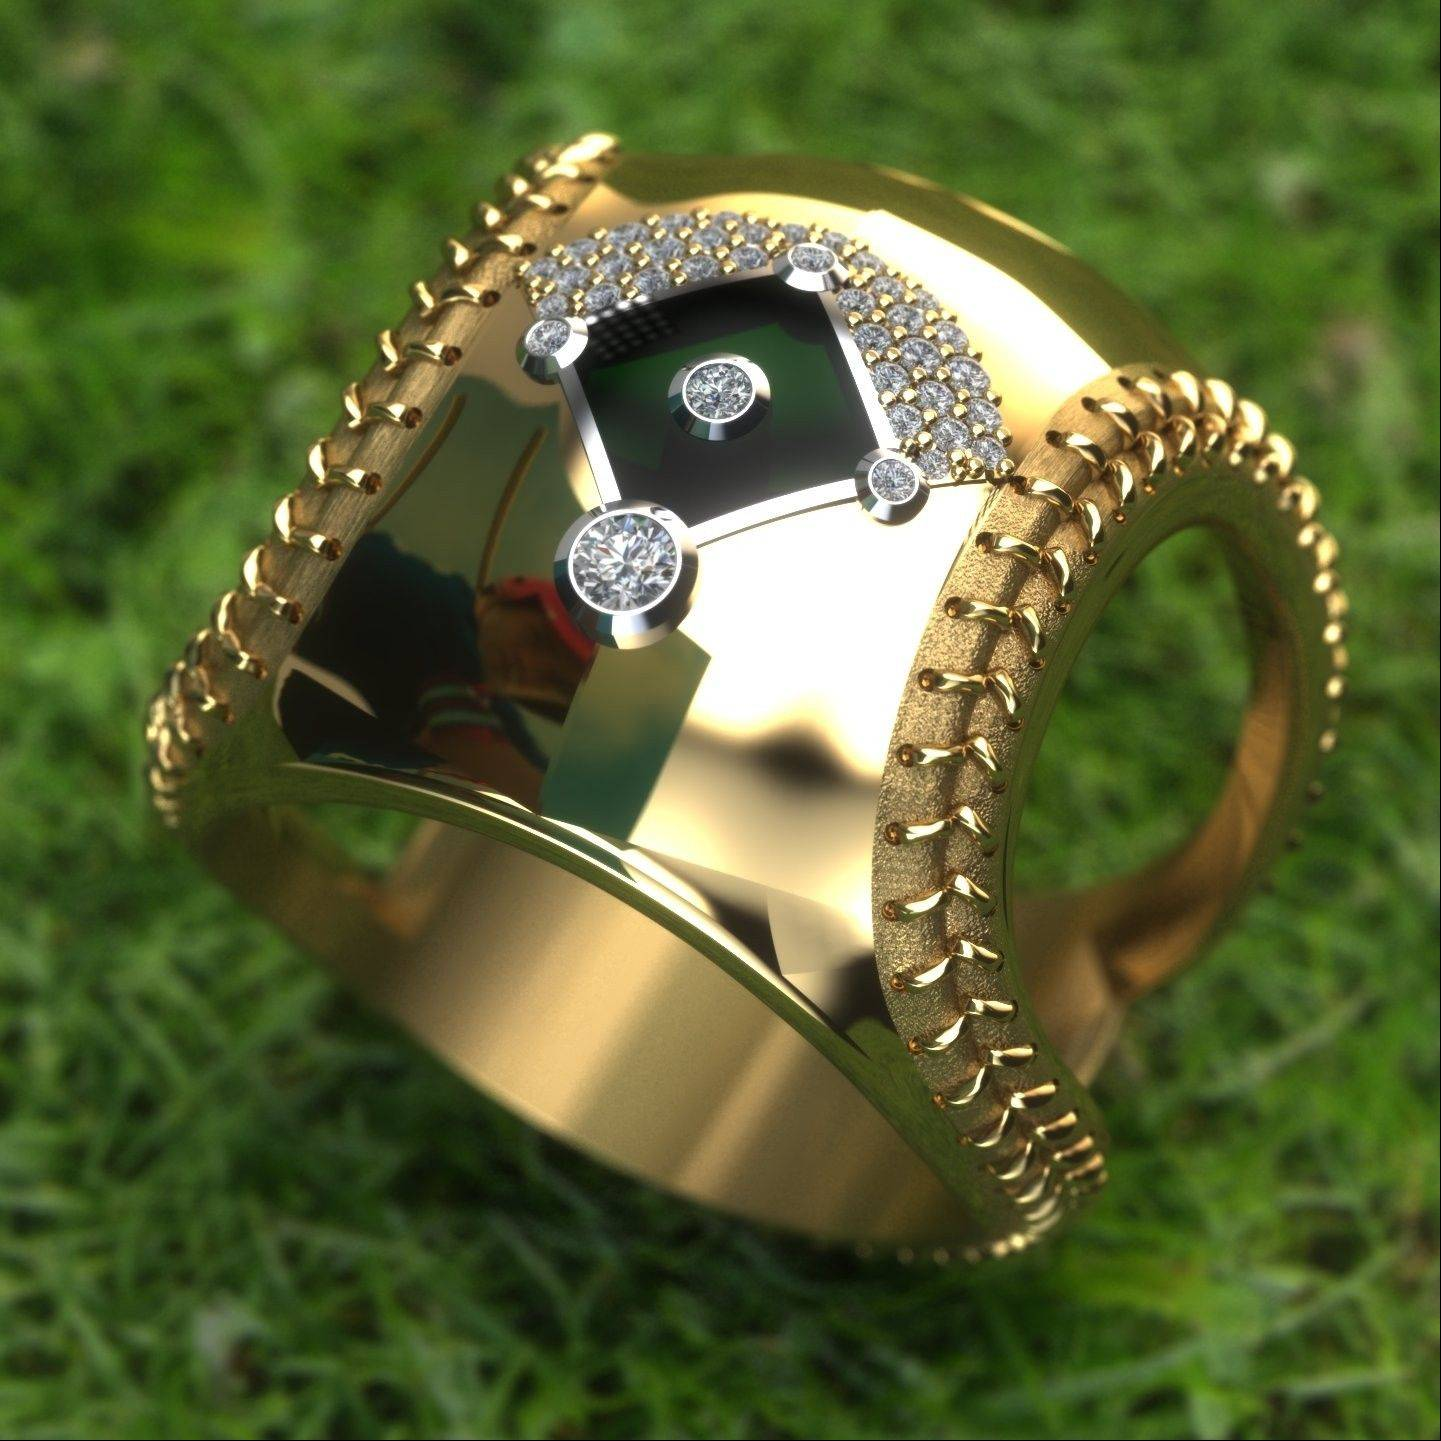 This ring for a very dedicated baseball fan won a design award for Amy Rugg, a designer at Wyatt Austin Jewelers in Schaumburg.